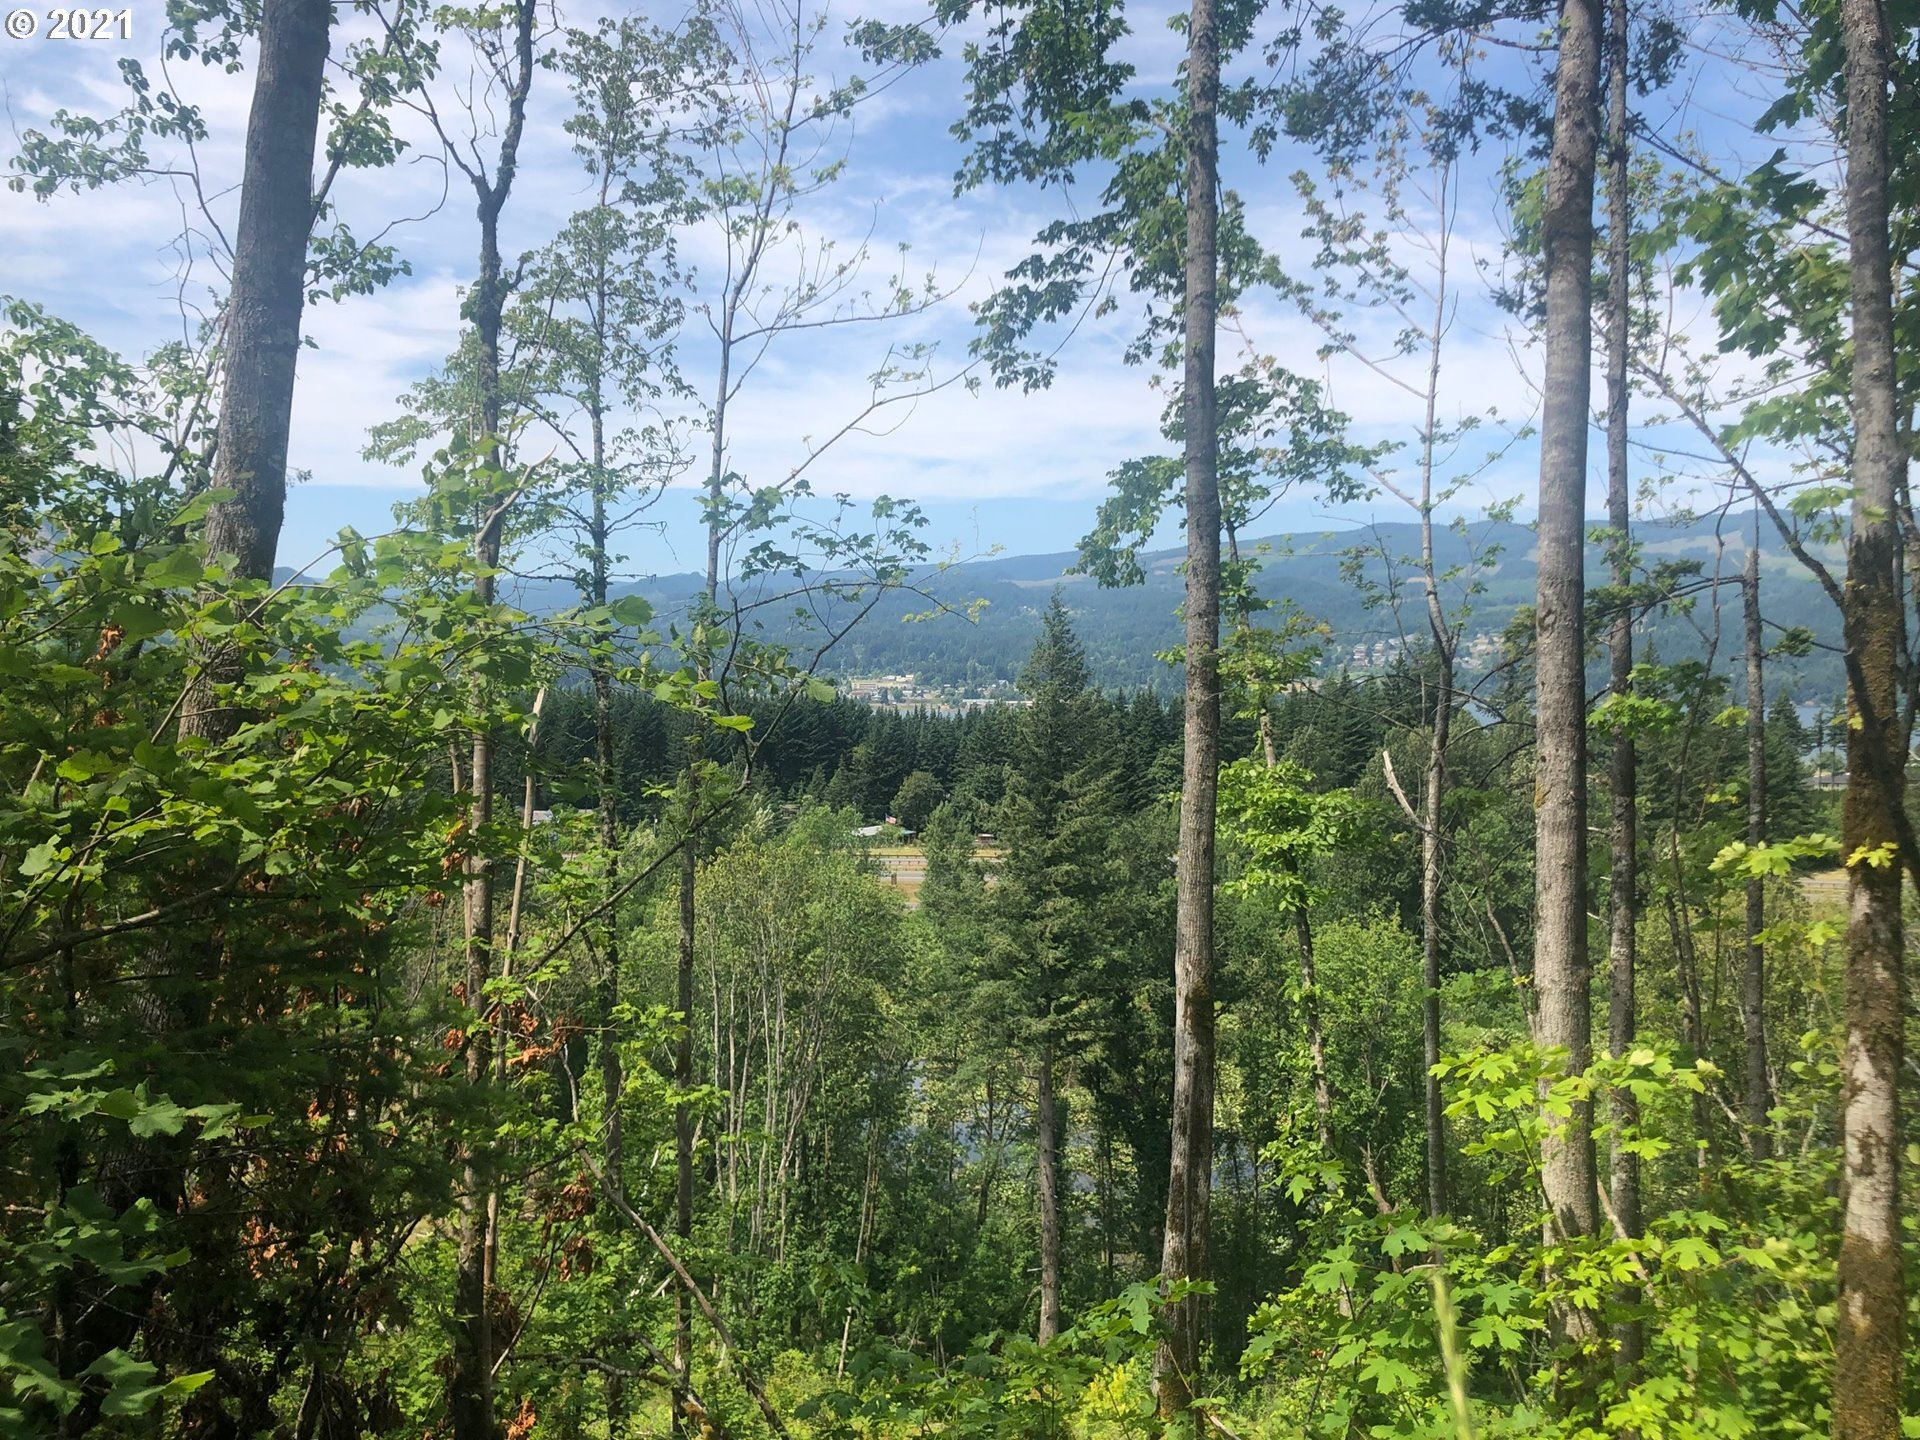 740 FRONTAGE RD, Cascade Locks, OR 97014 - #: 21554894